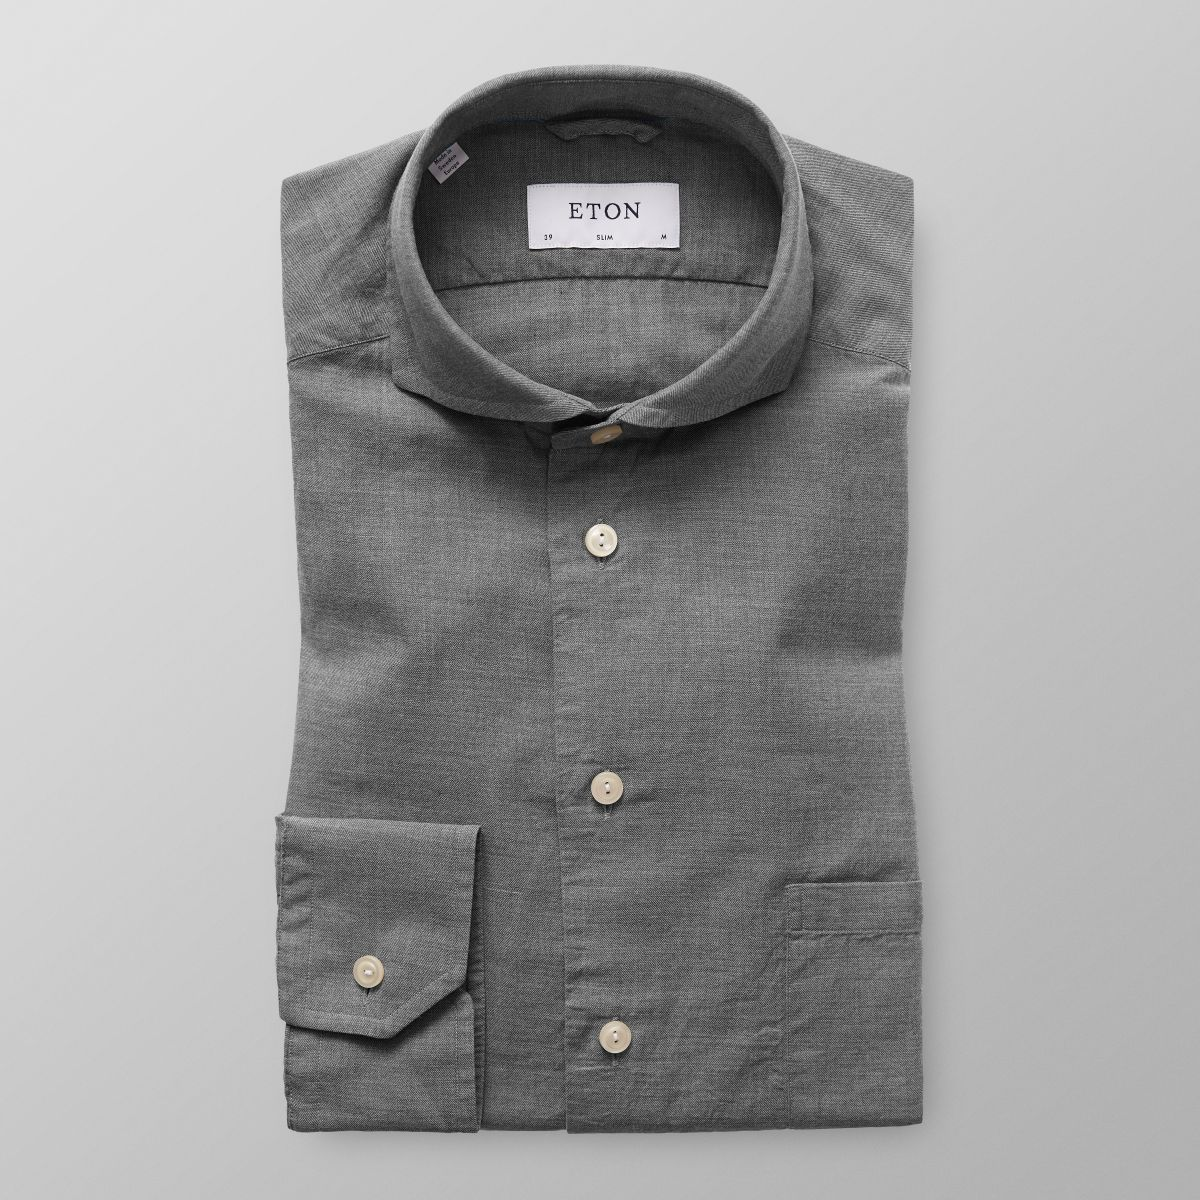 Slim fit Grey Lightweight Flannel Shirt Eton Clearance Browse High Quality For Sale Cheap Buy Authentic Looking For dRlPpZh